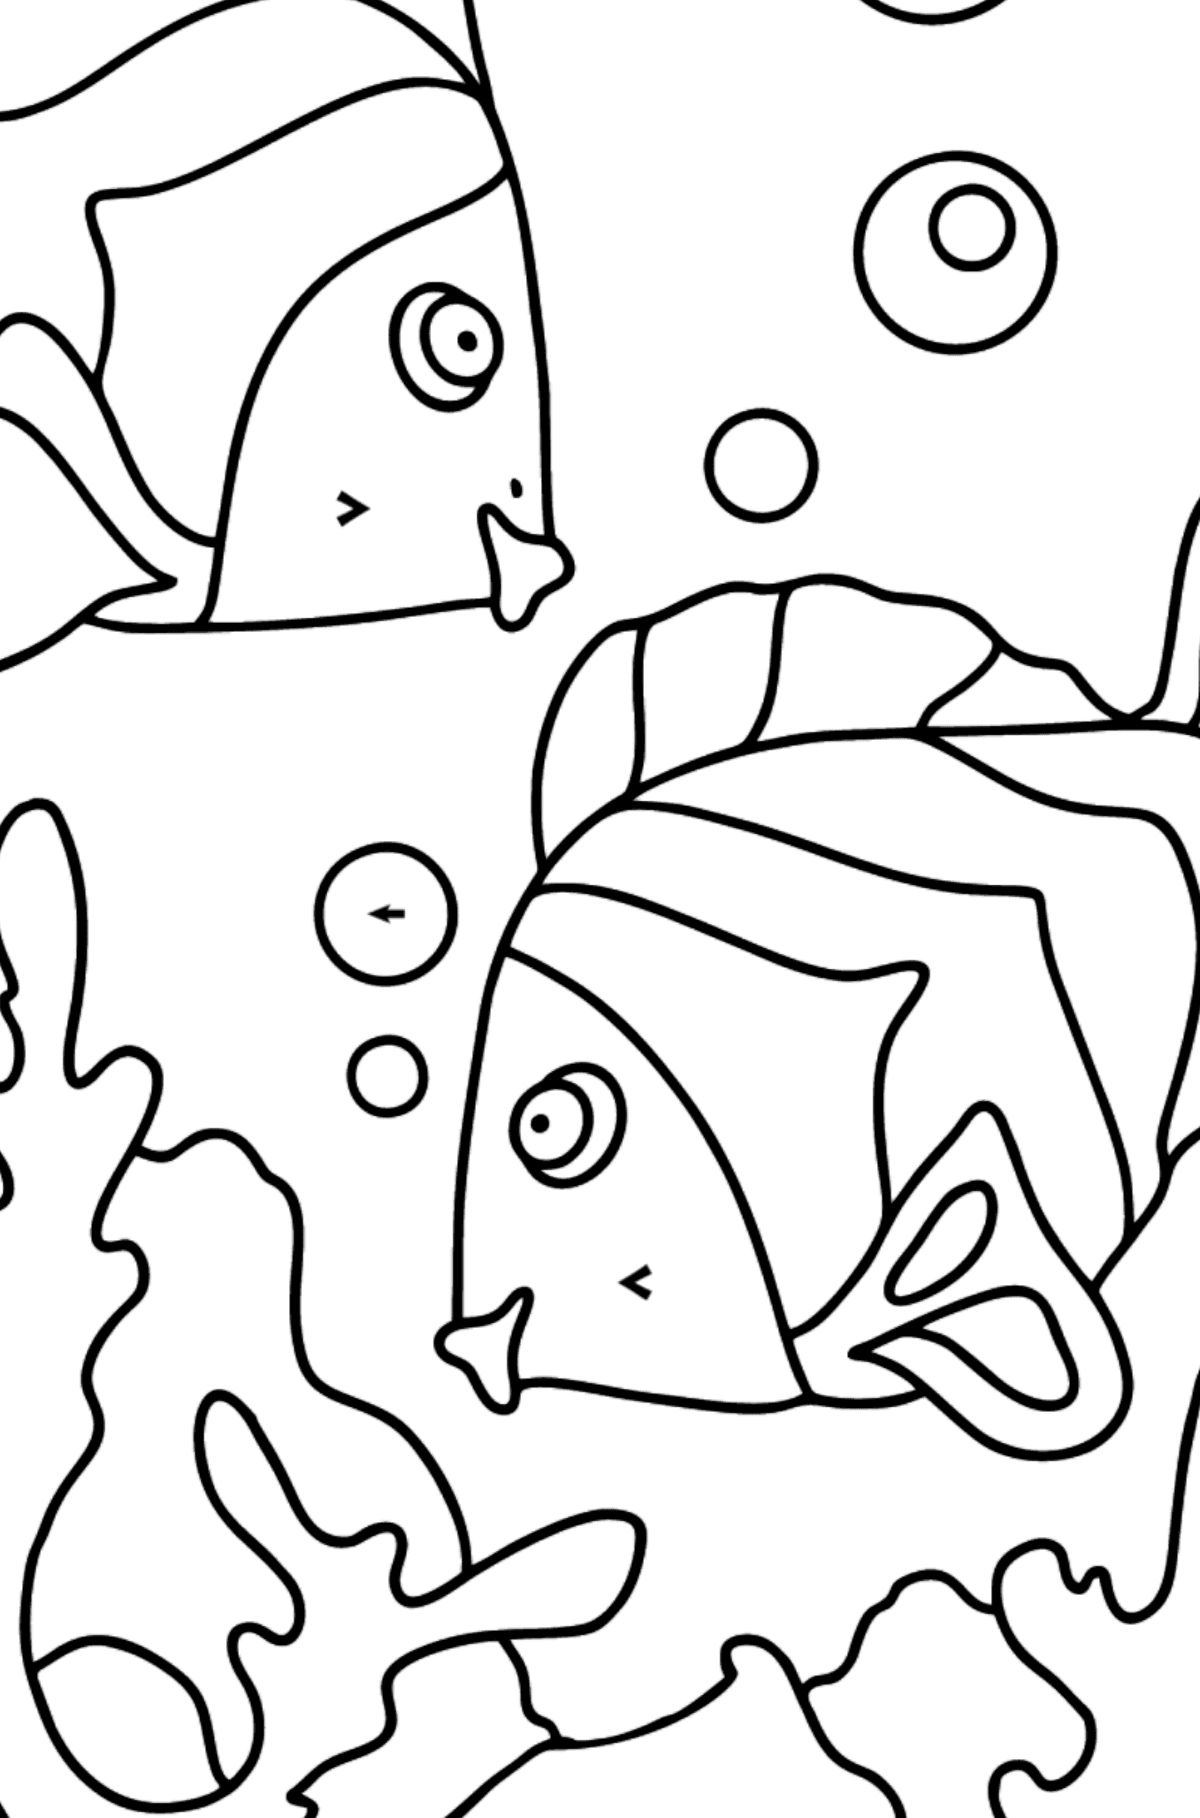 Coloring Page - Fish are Playing Happily - Coloring by Symbols for Kids